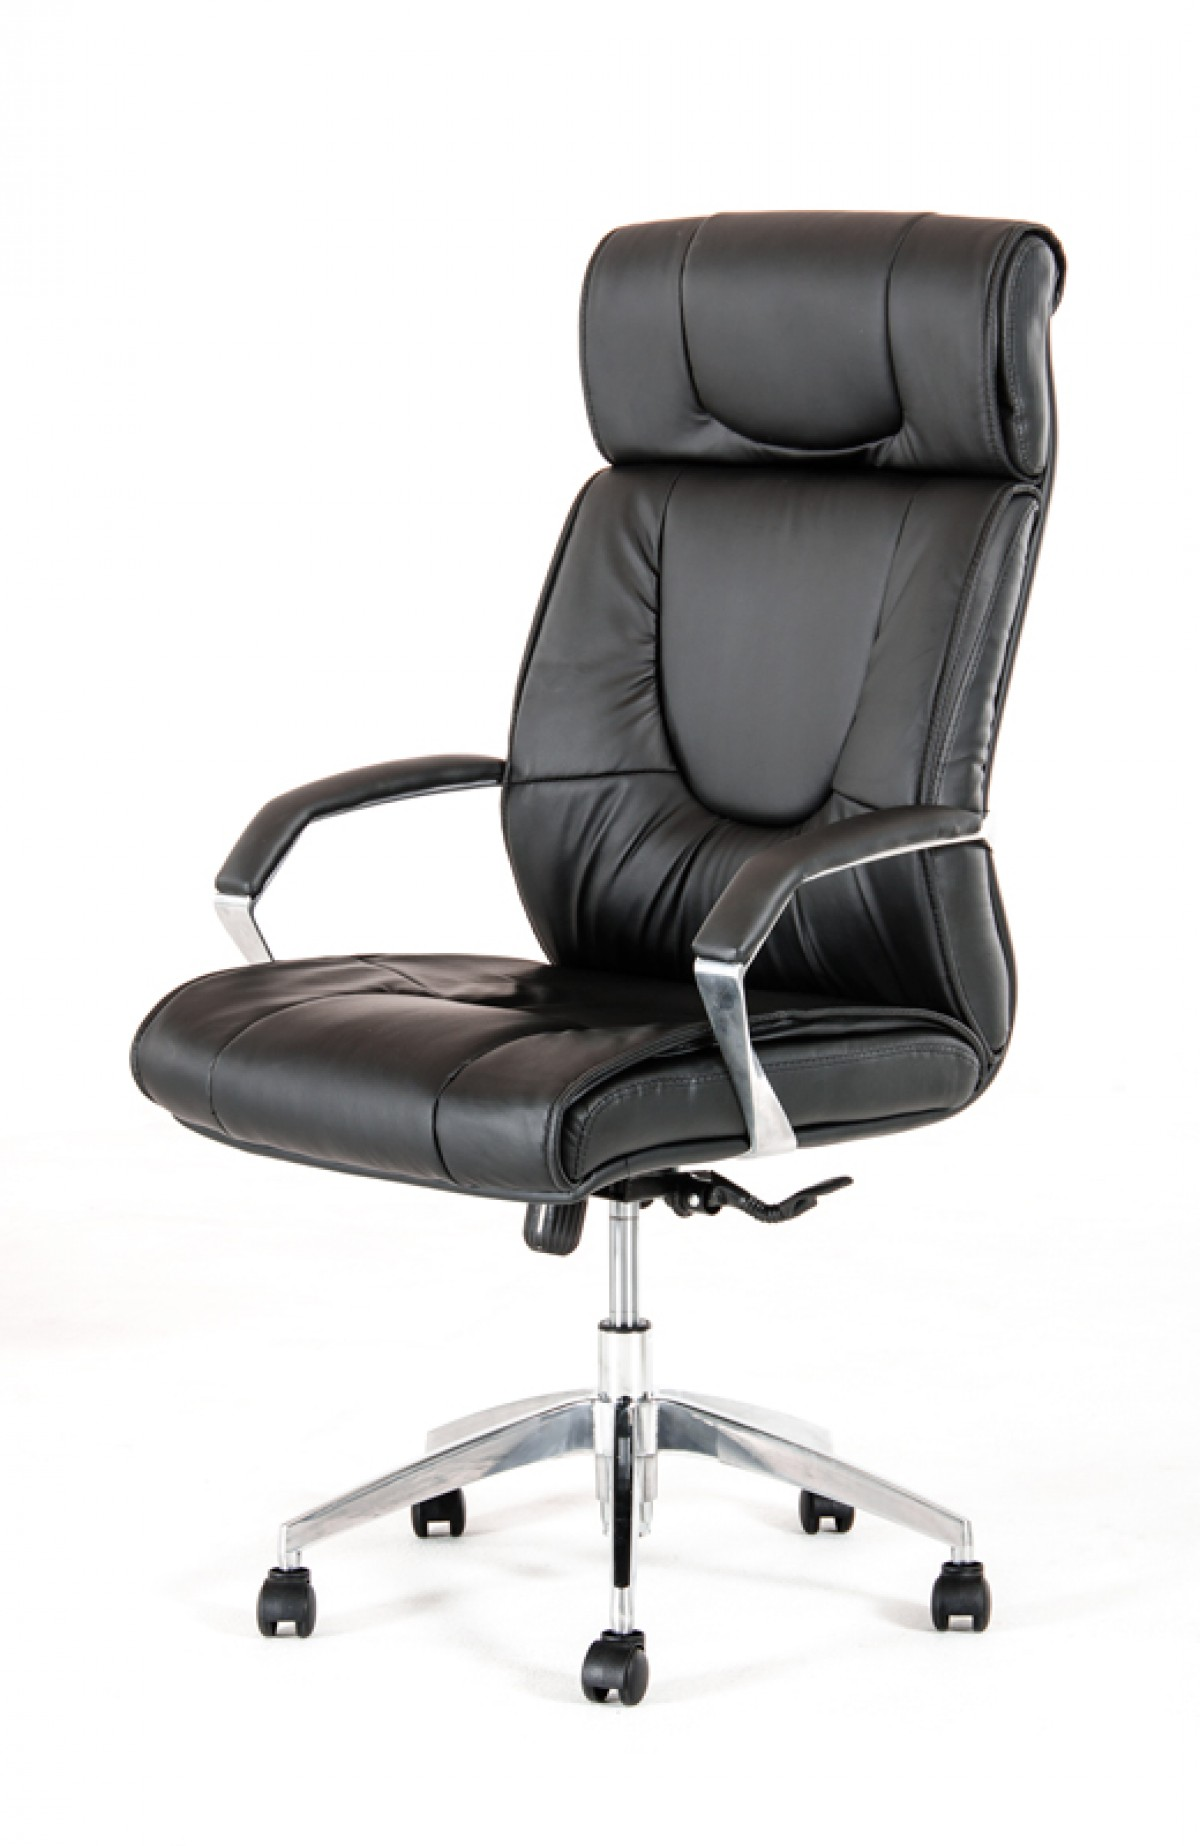 Modrest Victory Modern Black Office Chair - Office - Clearance ... on bar stools clearance, area rugs clearance, recliners clearance, bedding clearance, office chair swivel mechanism, office furniture, table lamps clearance, computer desk clearance, furniture clearance, bunk beds clearance, office desks clearance, office bar stools, sofa clearance, office chair icon, bedroom sets clearance, office chair headrest pillow, office chair dimensions,